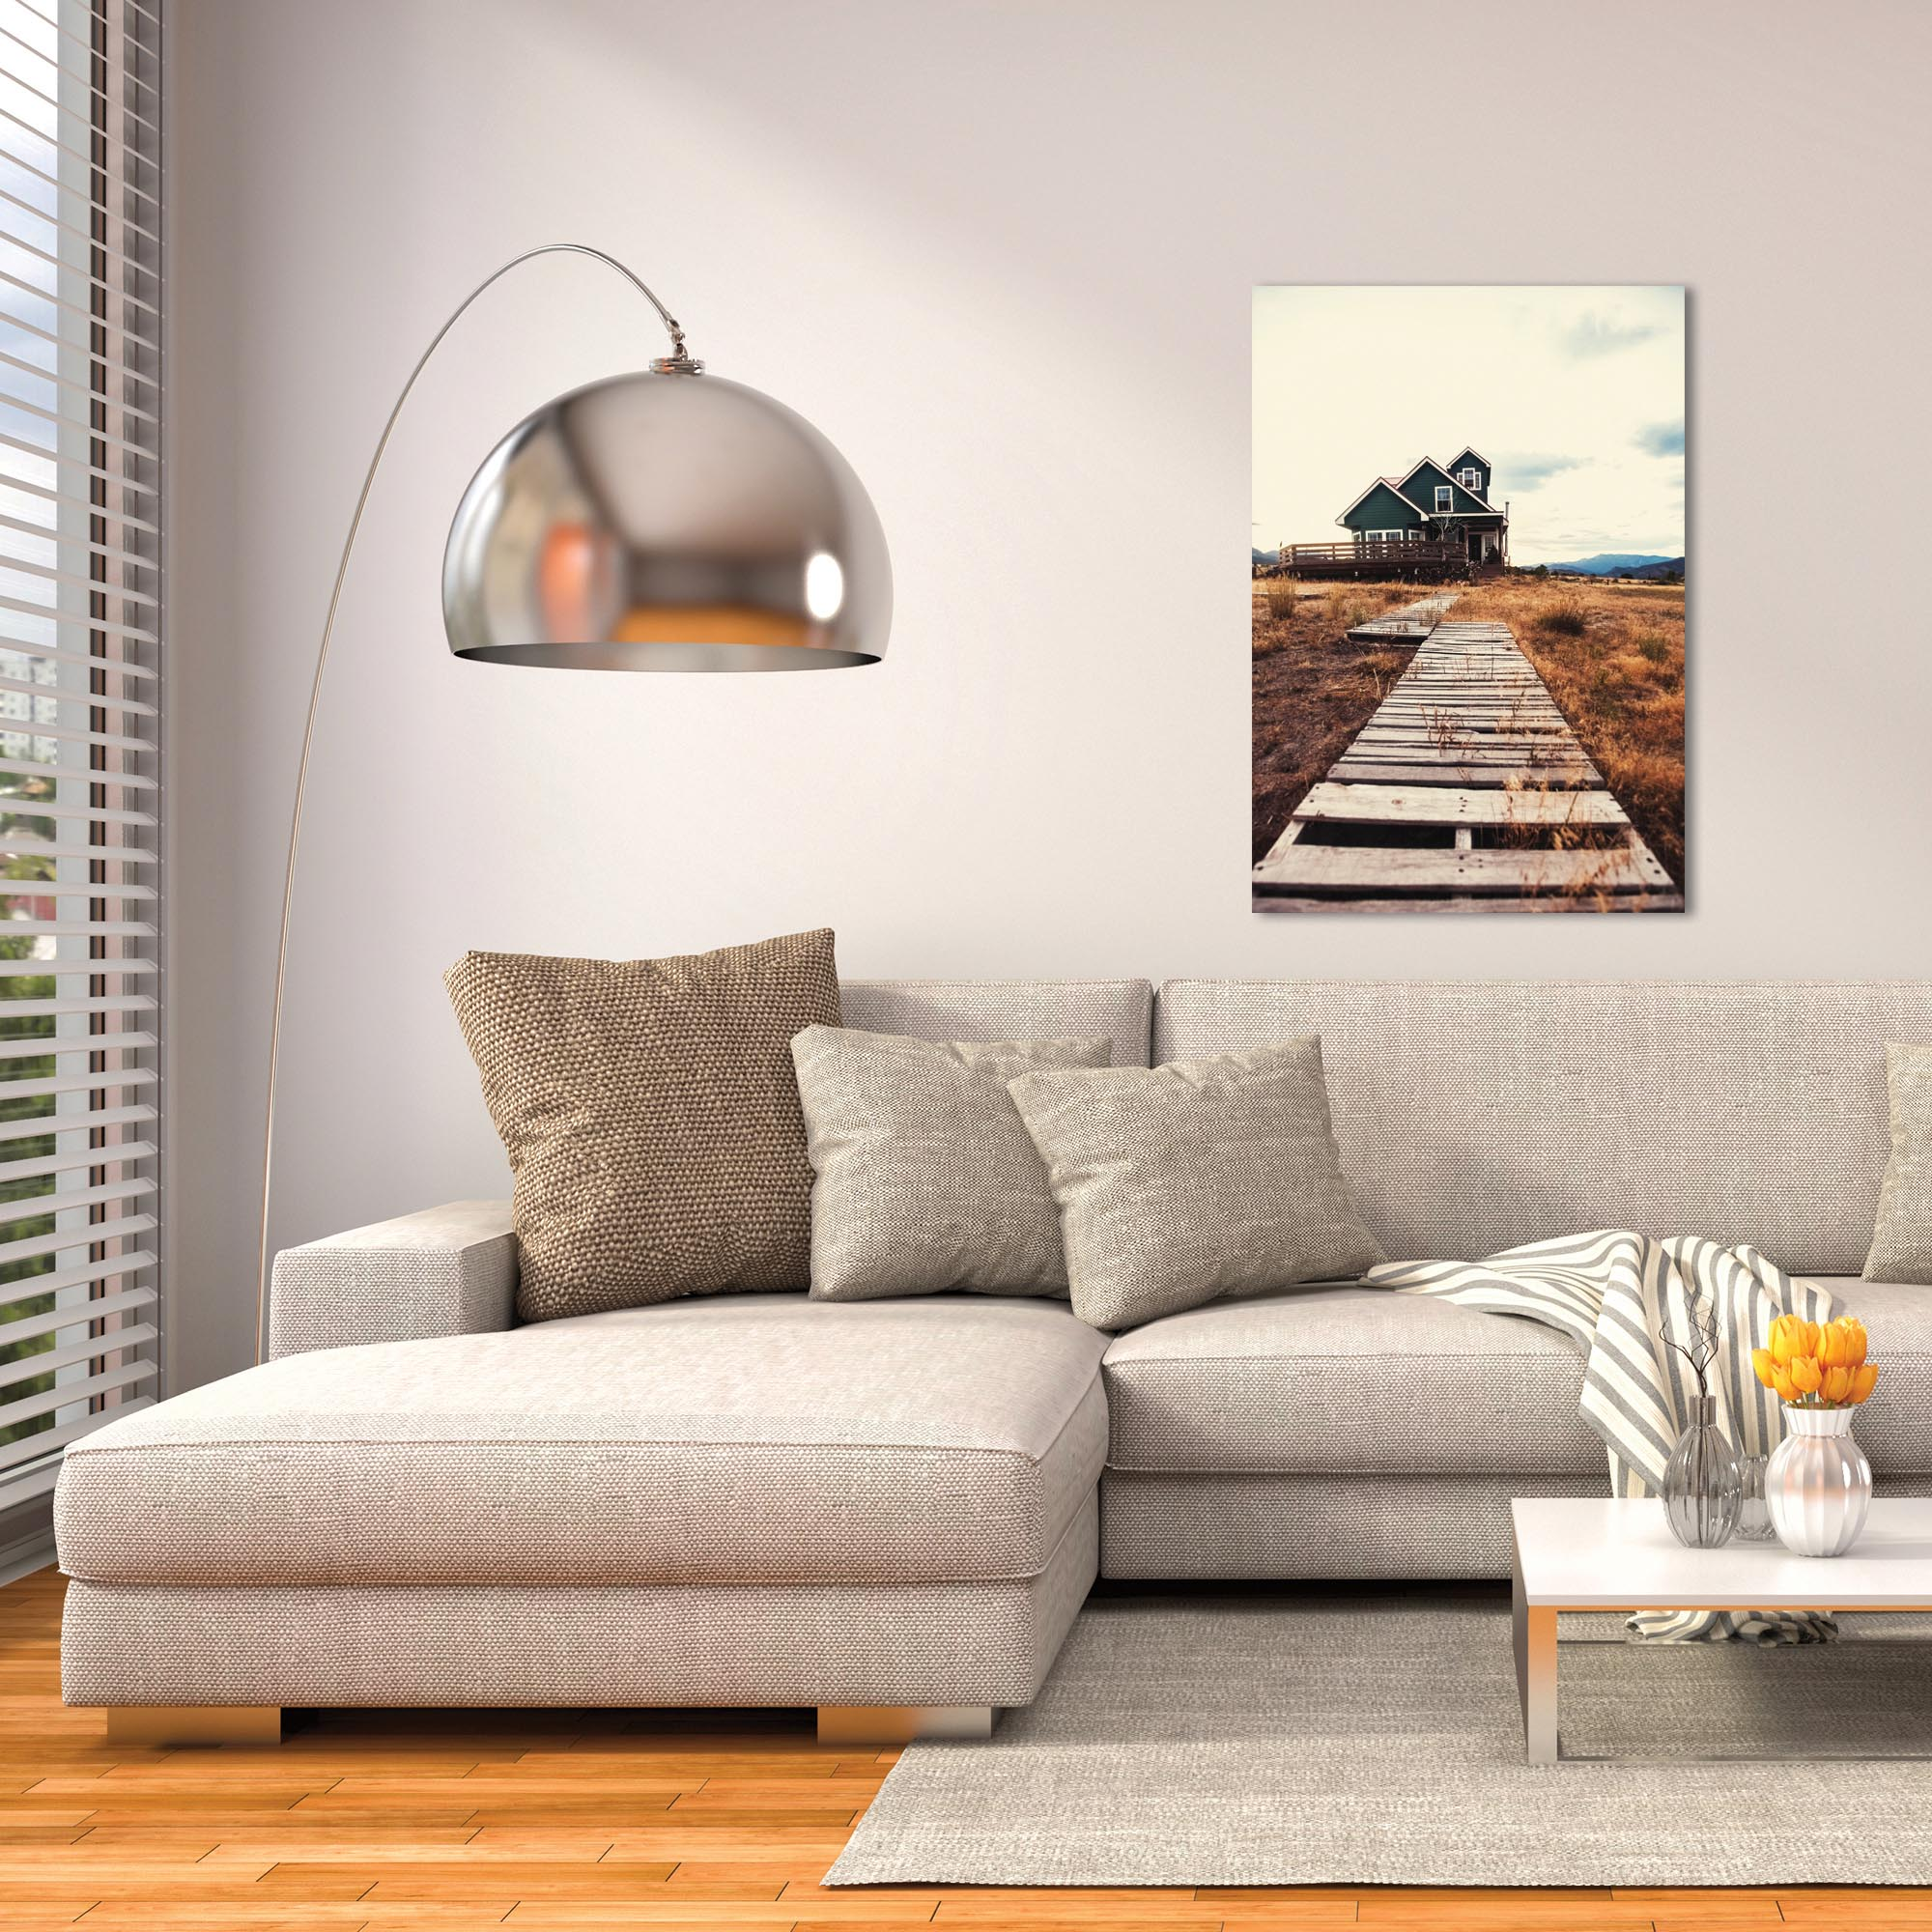 Western Wall Art 'The Walkway' - Farm Landscape Decor on Metal or Plexiglass - Lifestyle View